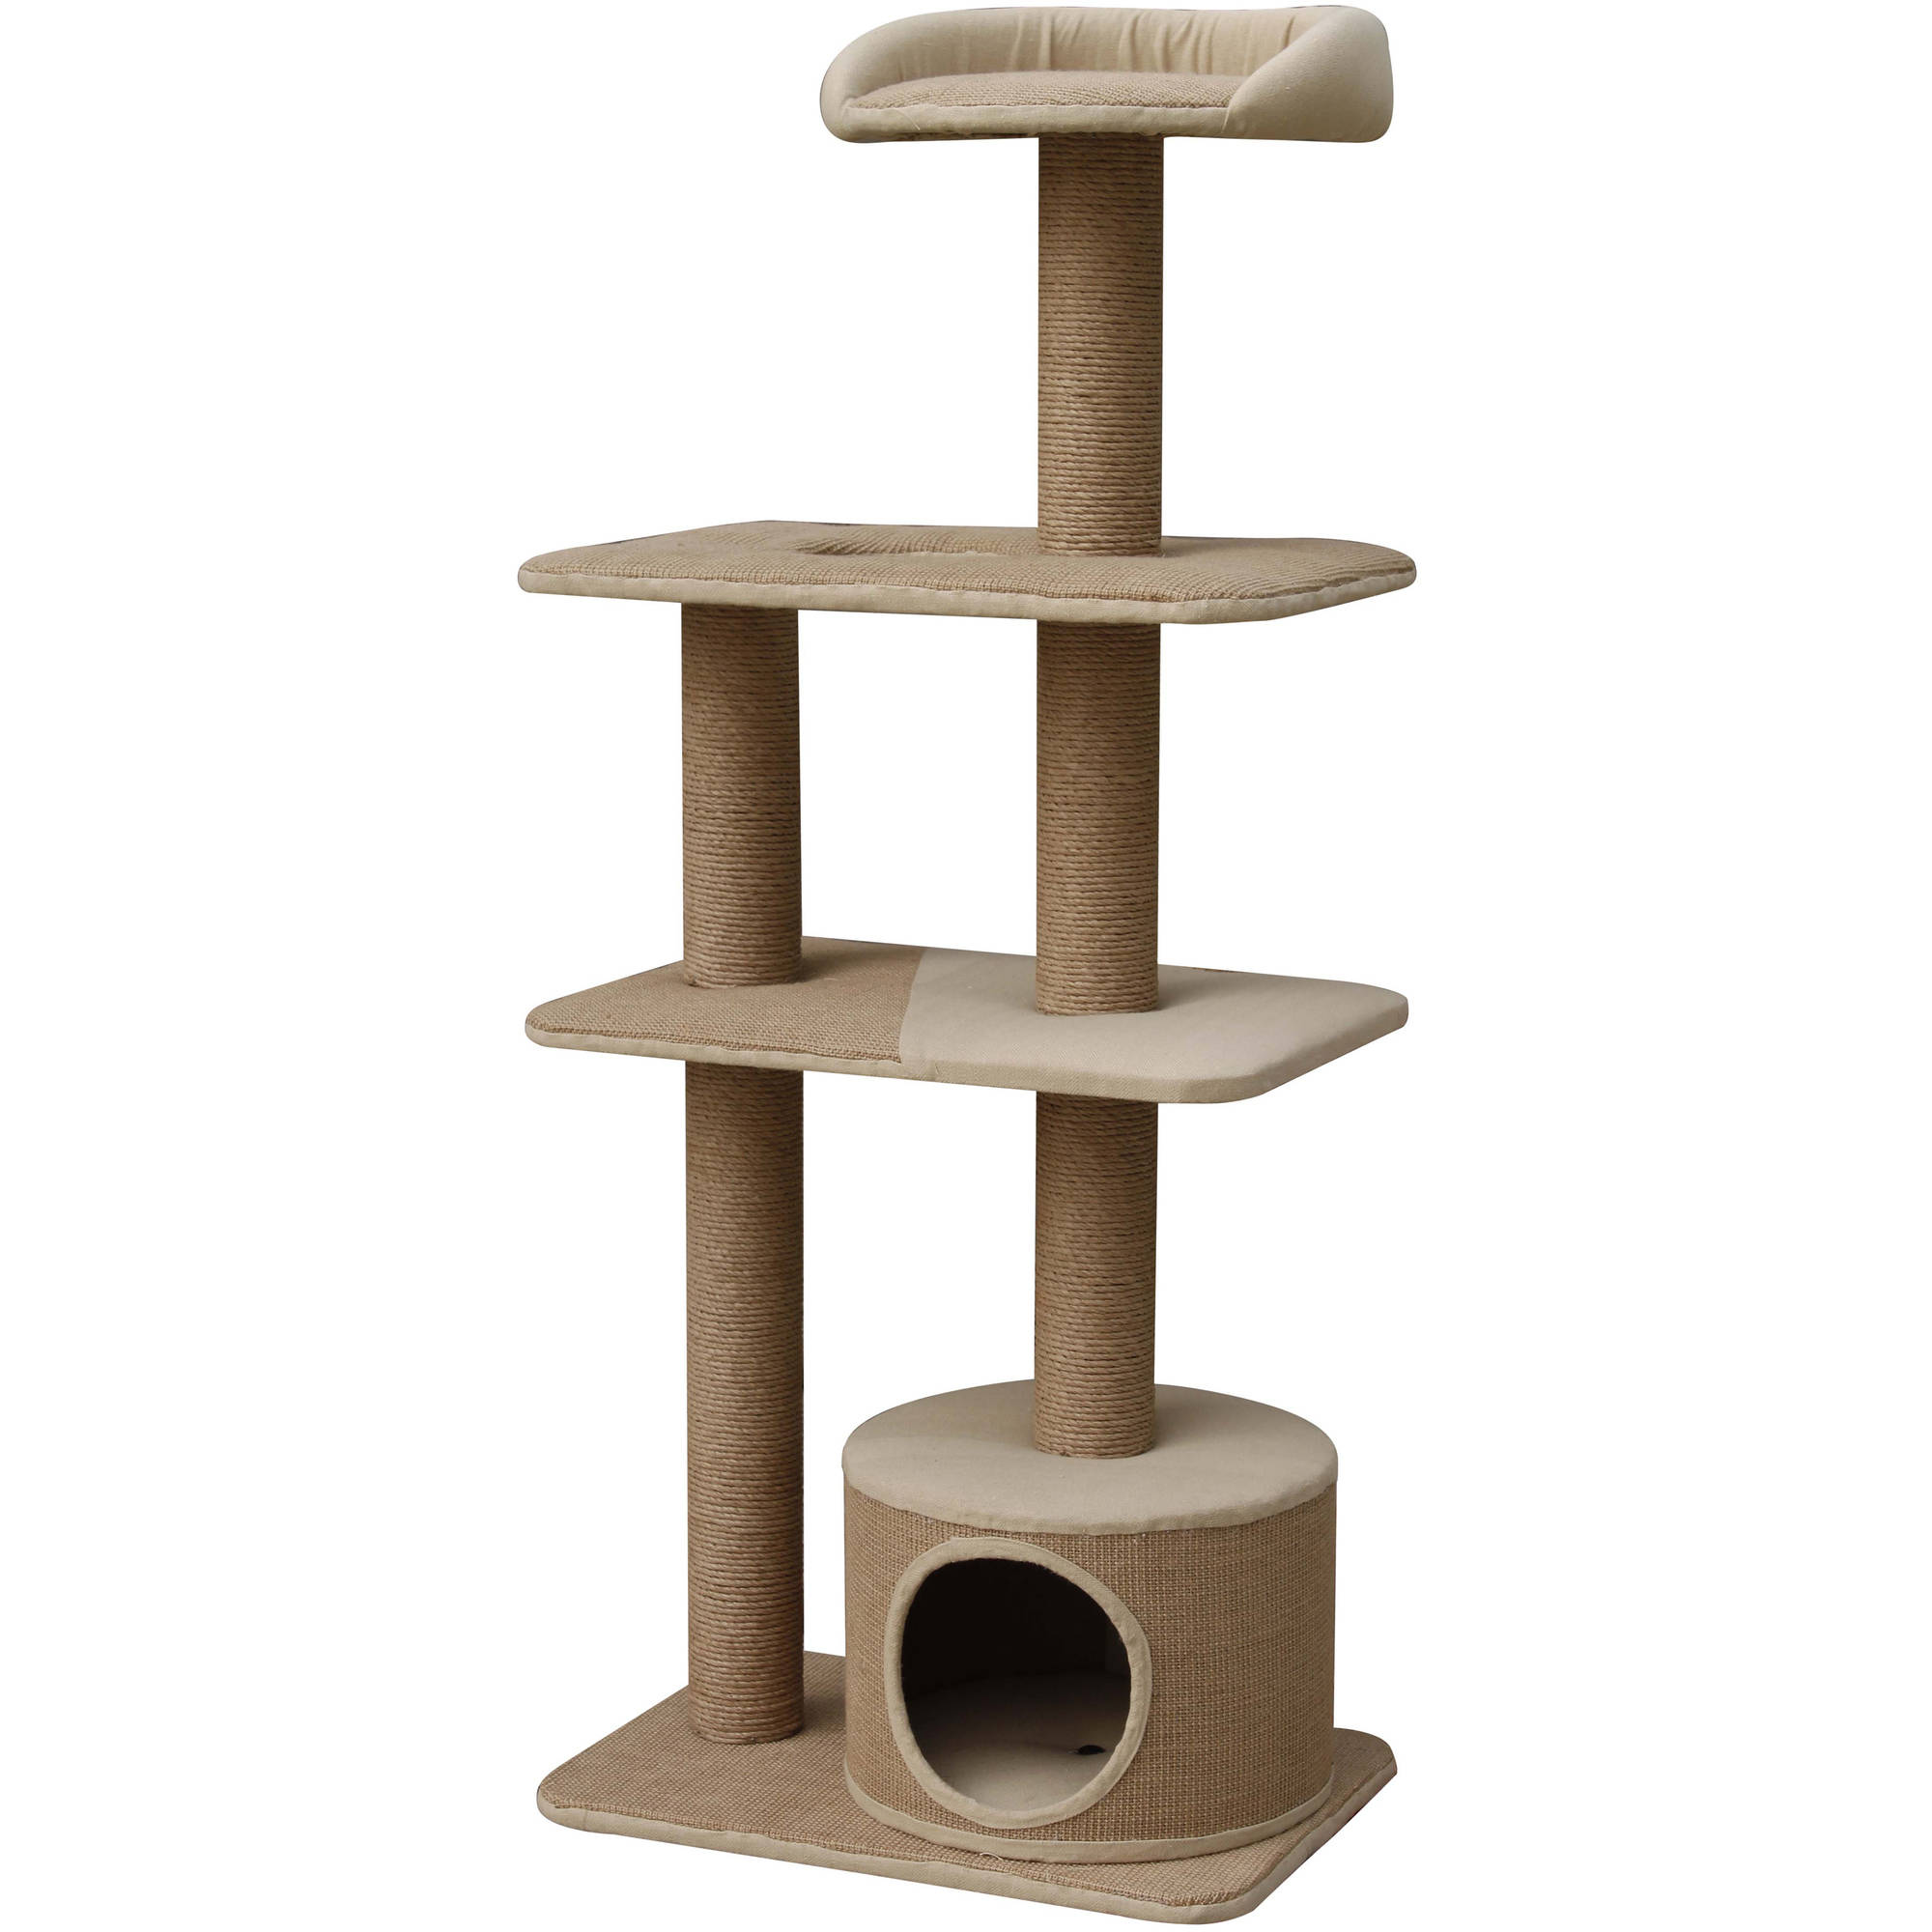 Petpals Group Spire 4 Levels Paper and Jute Towers with Lookout and Condo Hideout